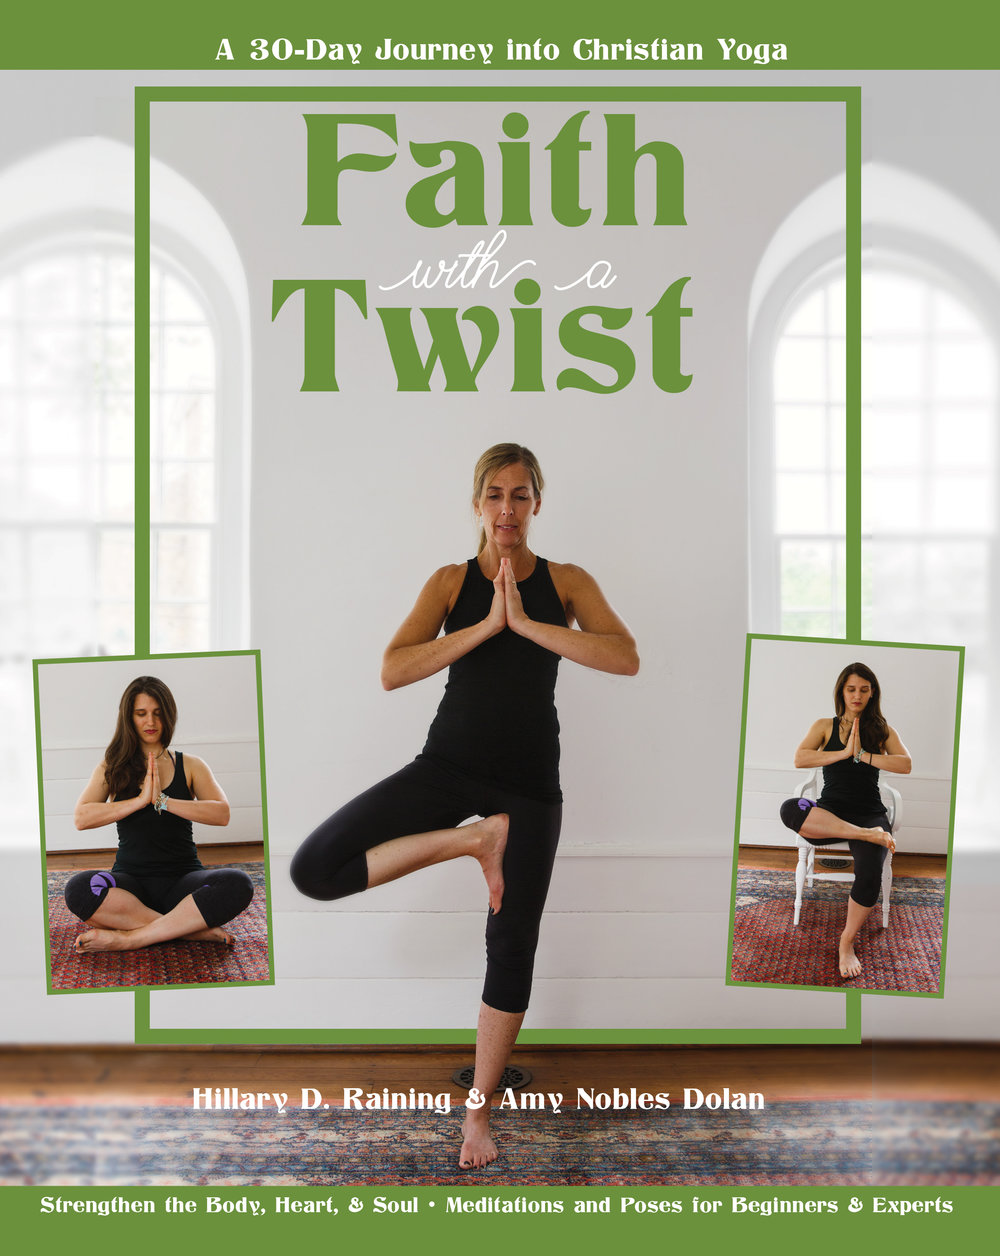 Faith with a twist cover .jpg